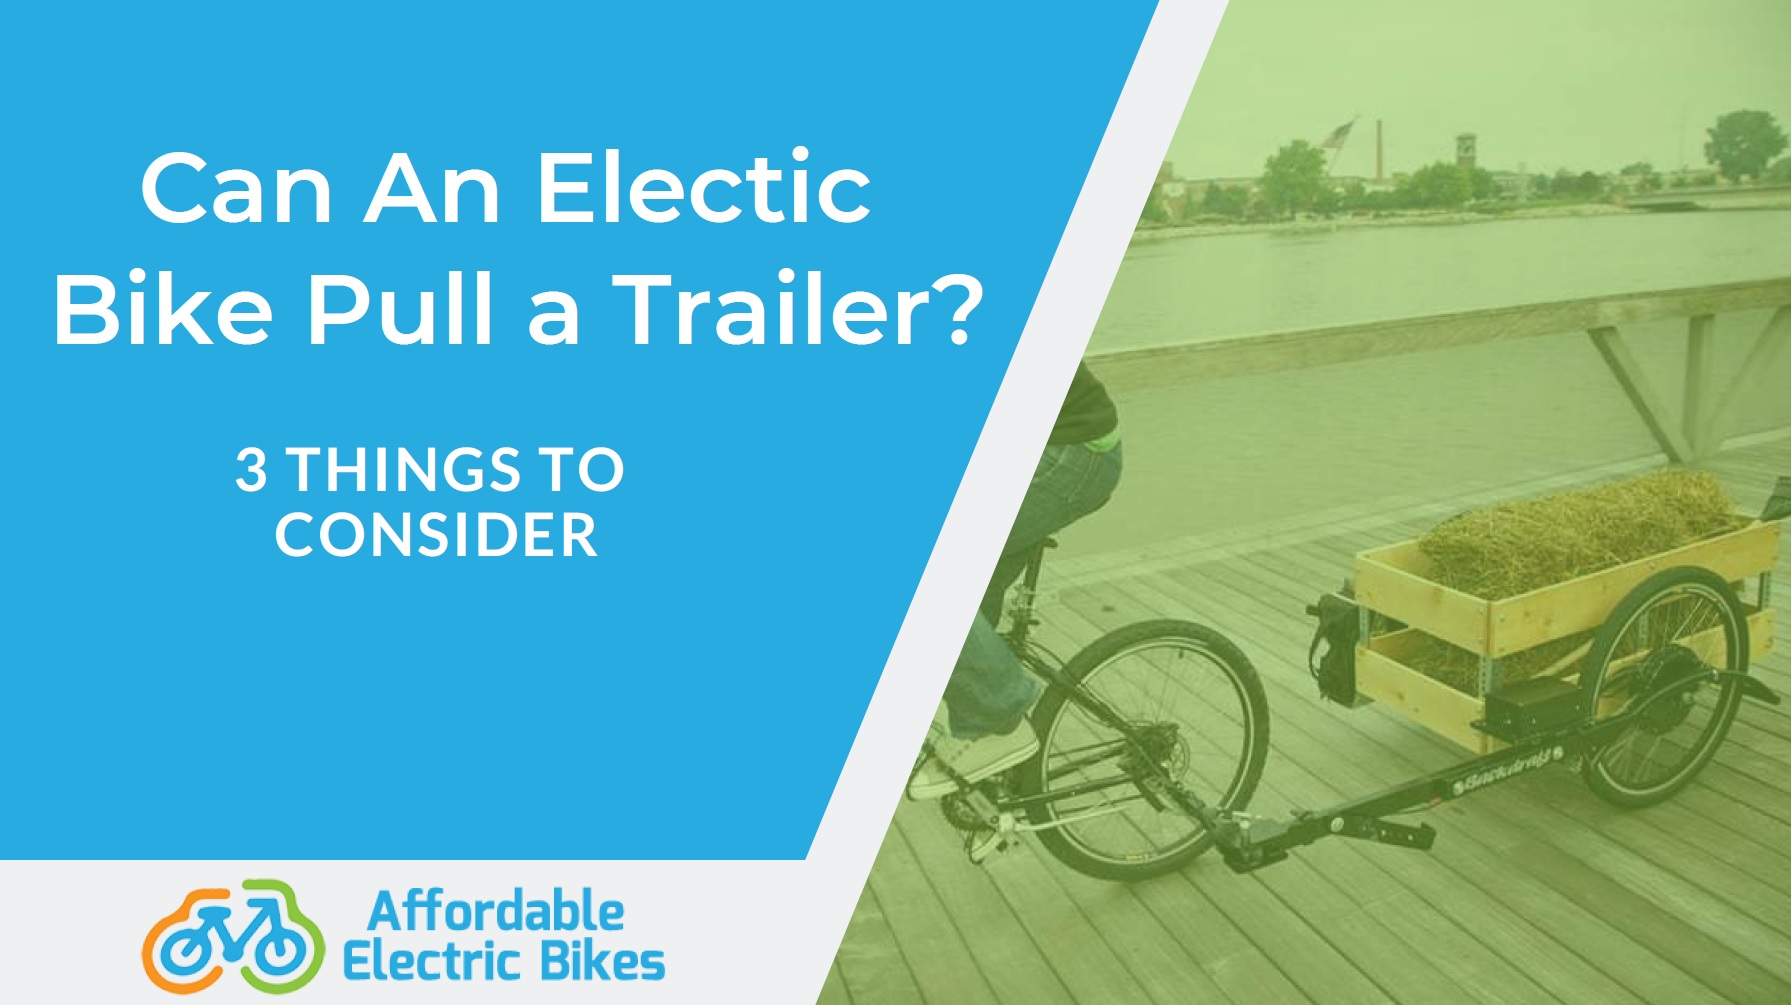 Can An Electic Bike Pull a Trailer? 3 Things to Consider